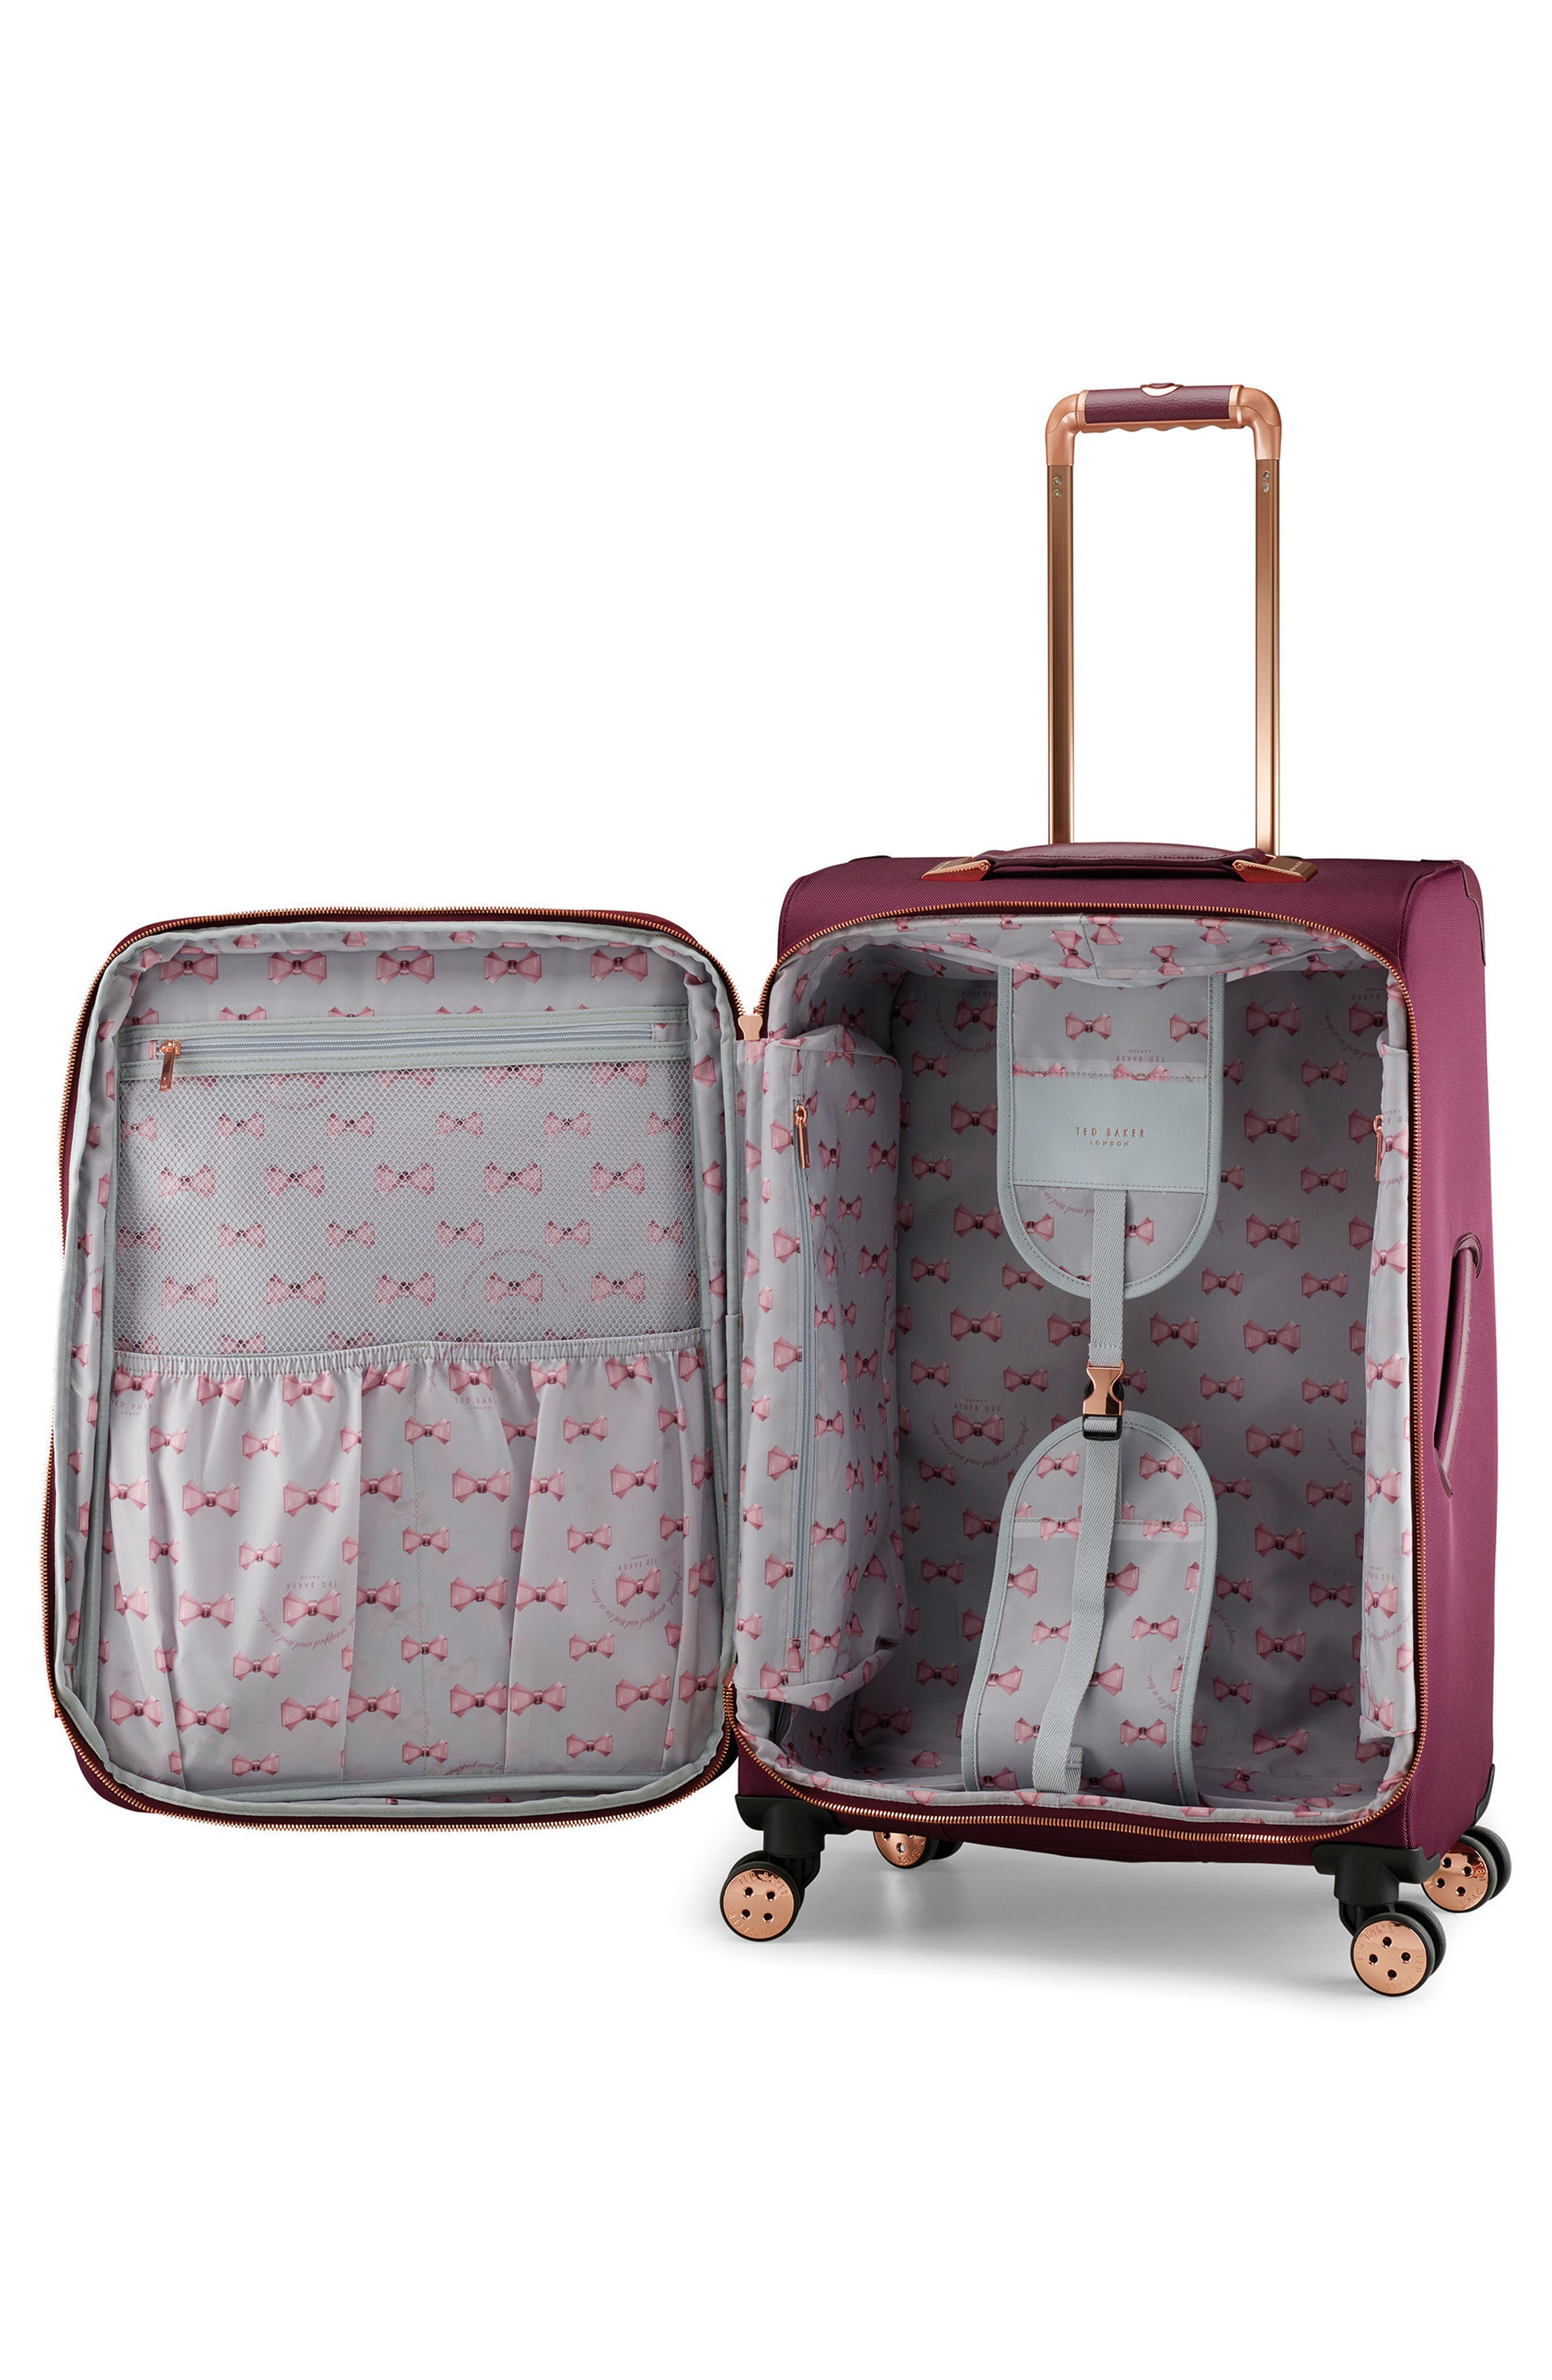 28-Inch Spinner Trolley Packing Case,                             Alternate thumbnail 2, color,                             Burgundy